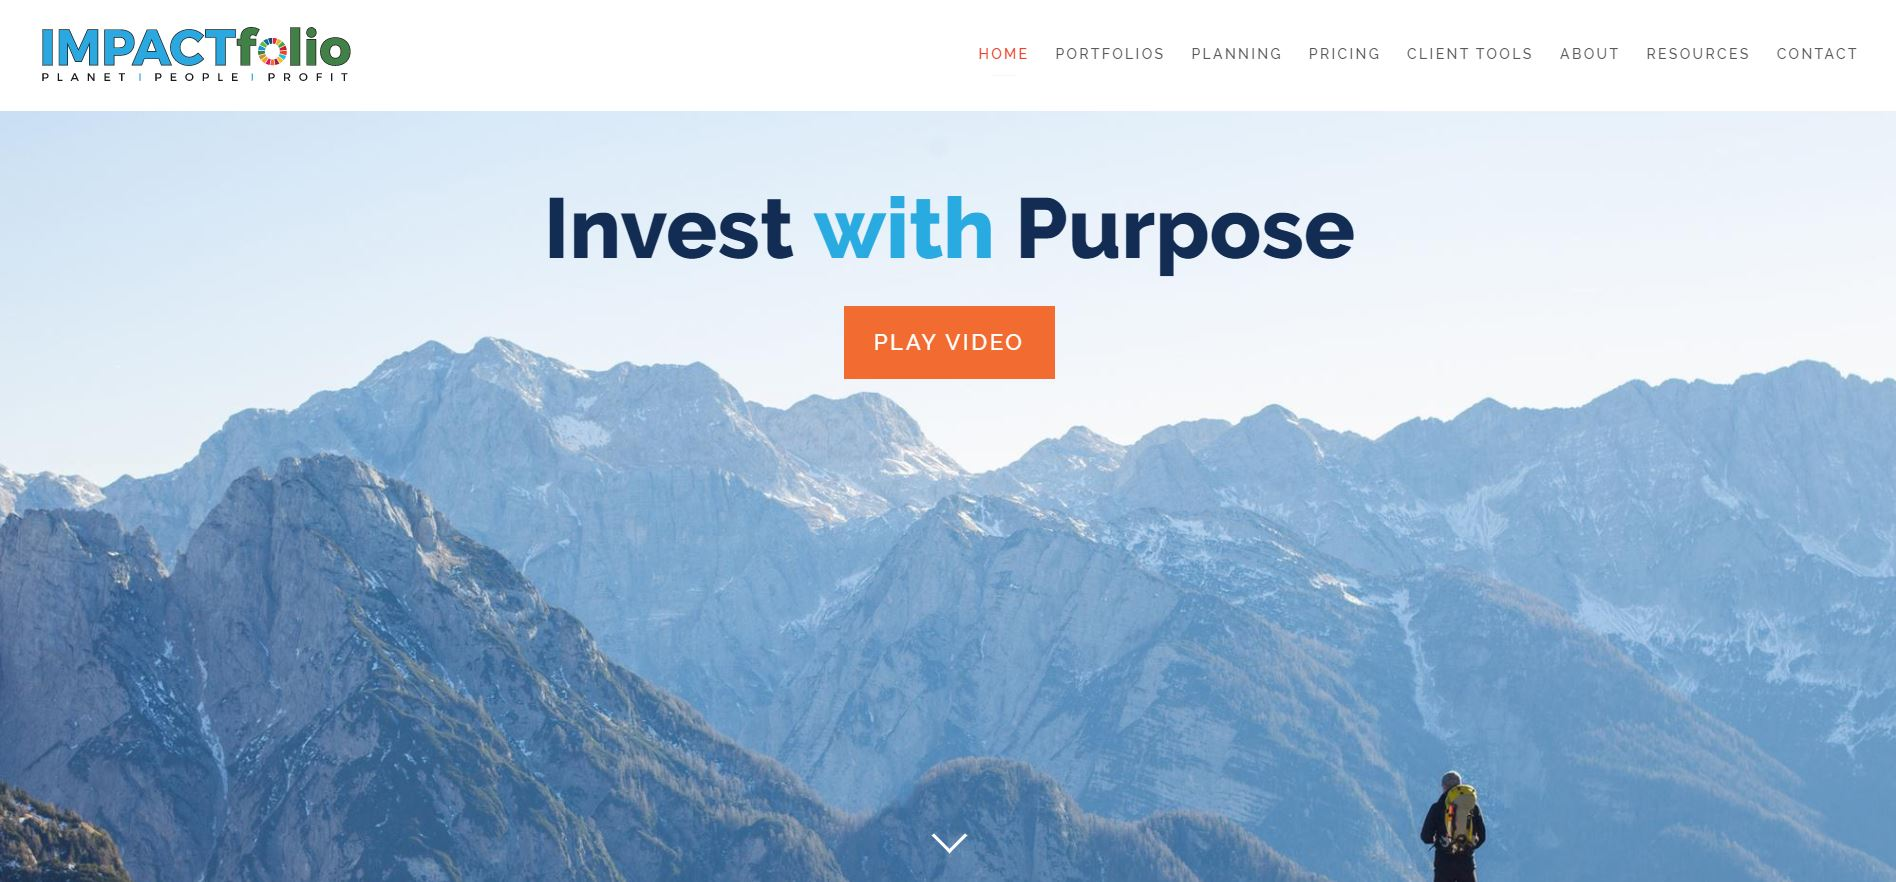 impactfolio website